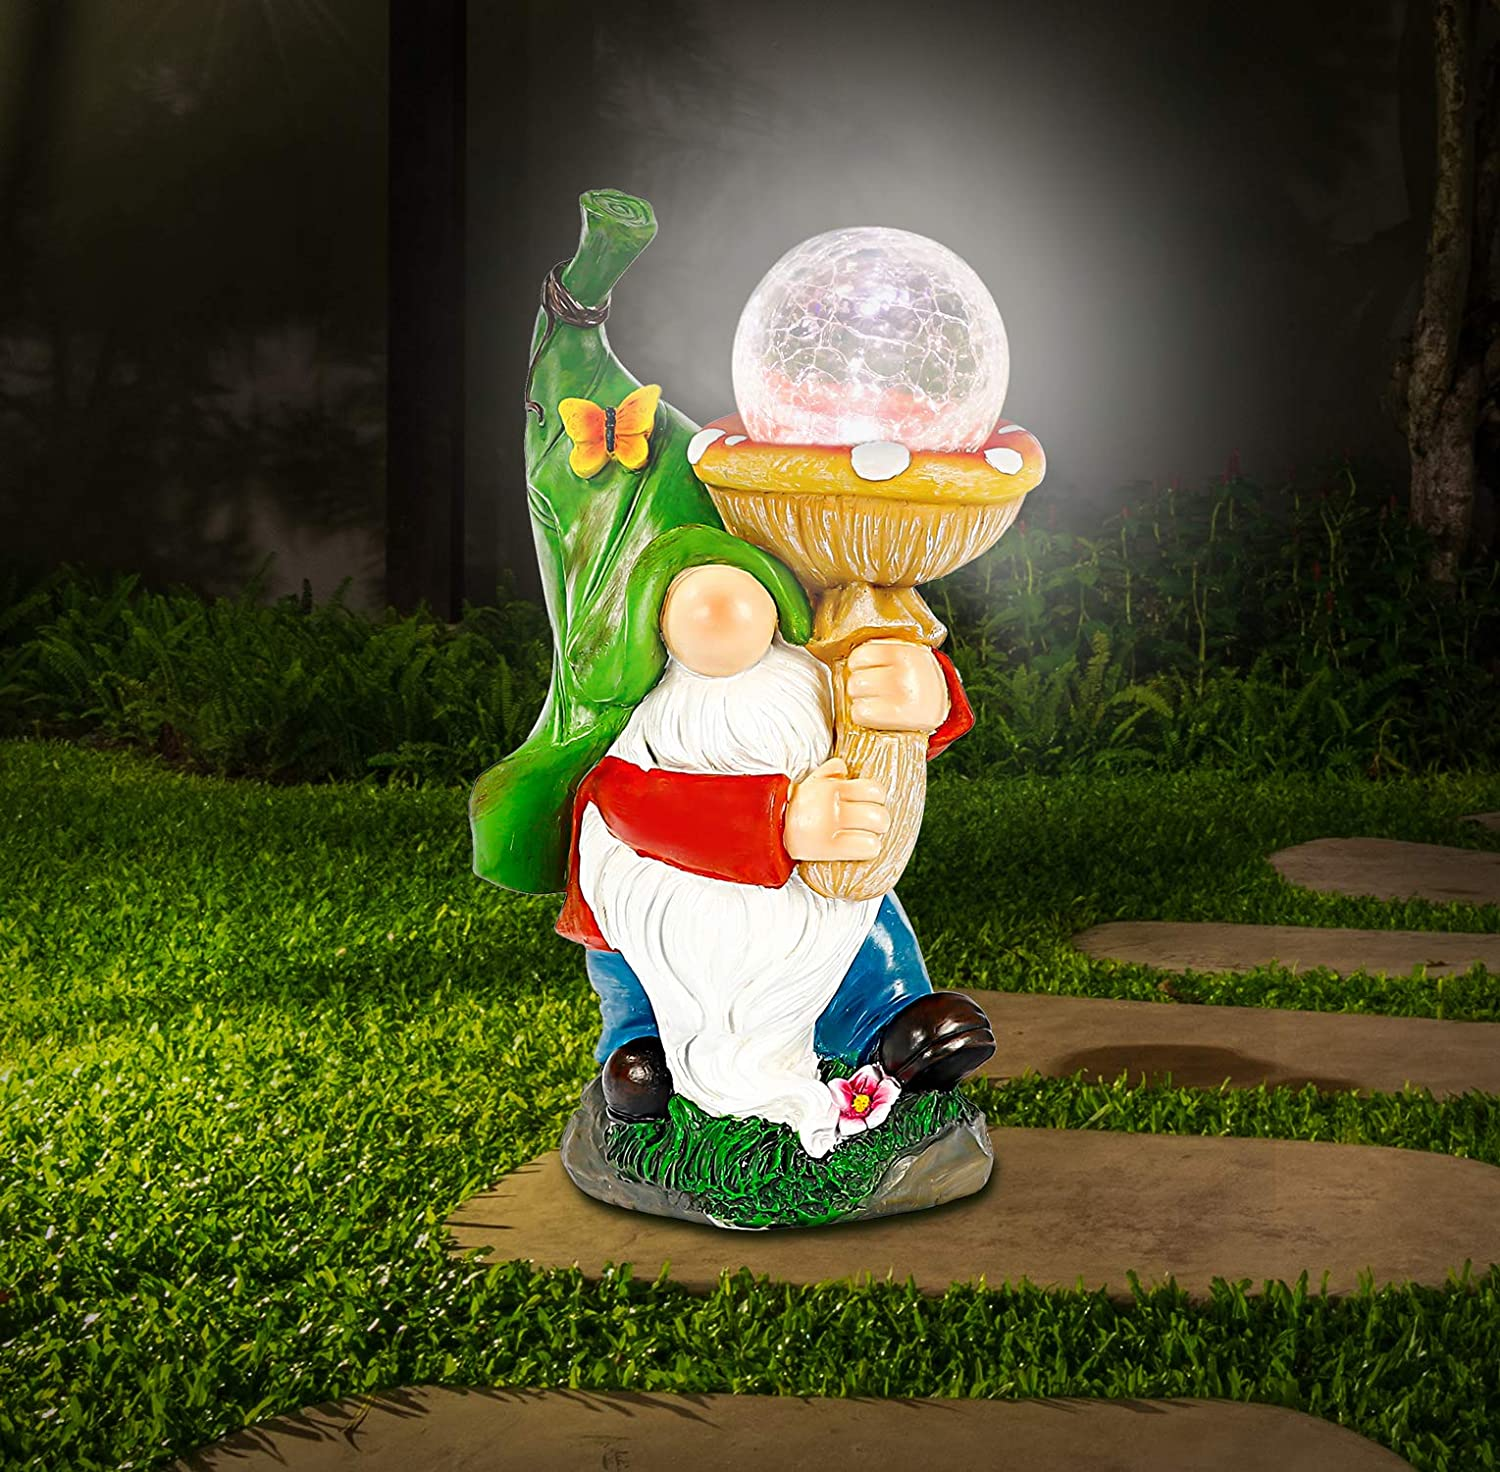 WOGOON Garden Gnome Statue Outdoor Decor, Resin Gnome Figurine Holding Bright Solar-Powered Light Up Glass Orb, Outside Decorations Spring Autumn Art Sculpture Ornaments for Patio Yard Lawn Pond